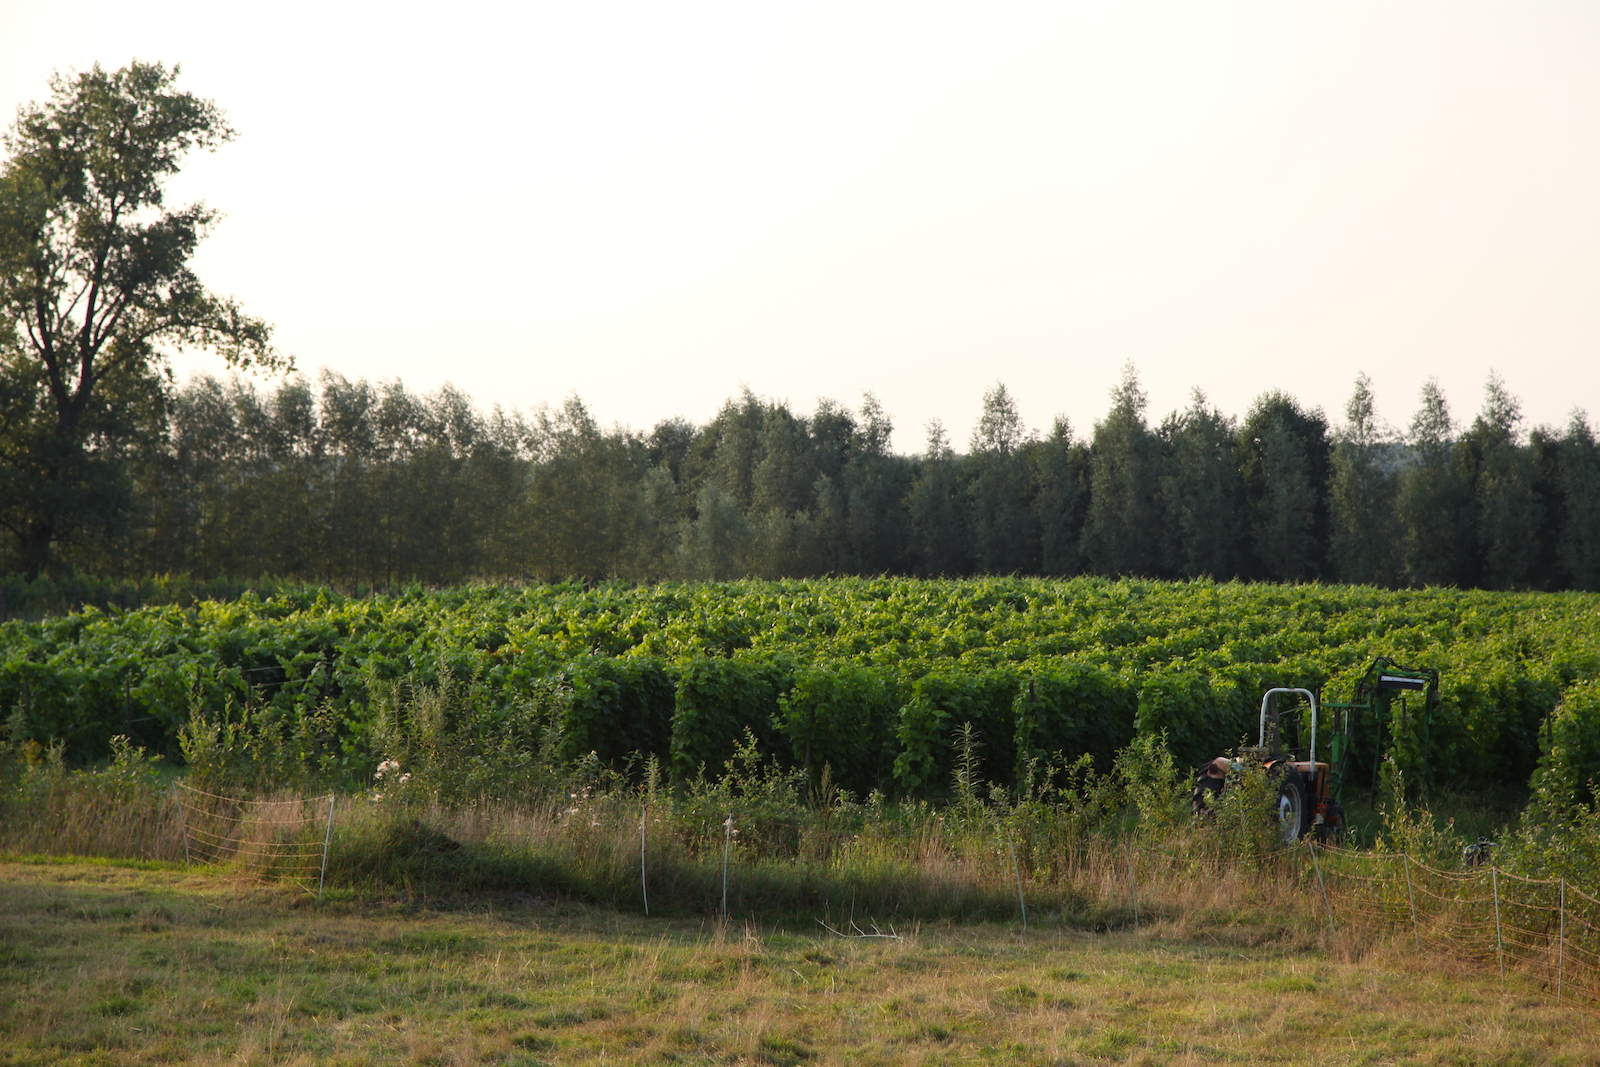 The vineyards of Wijngaard Dassemus